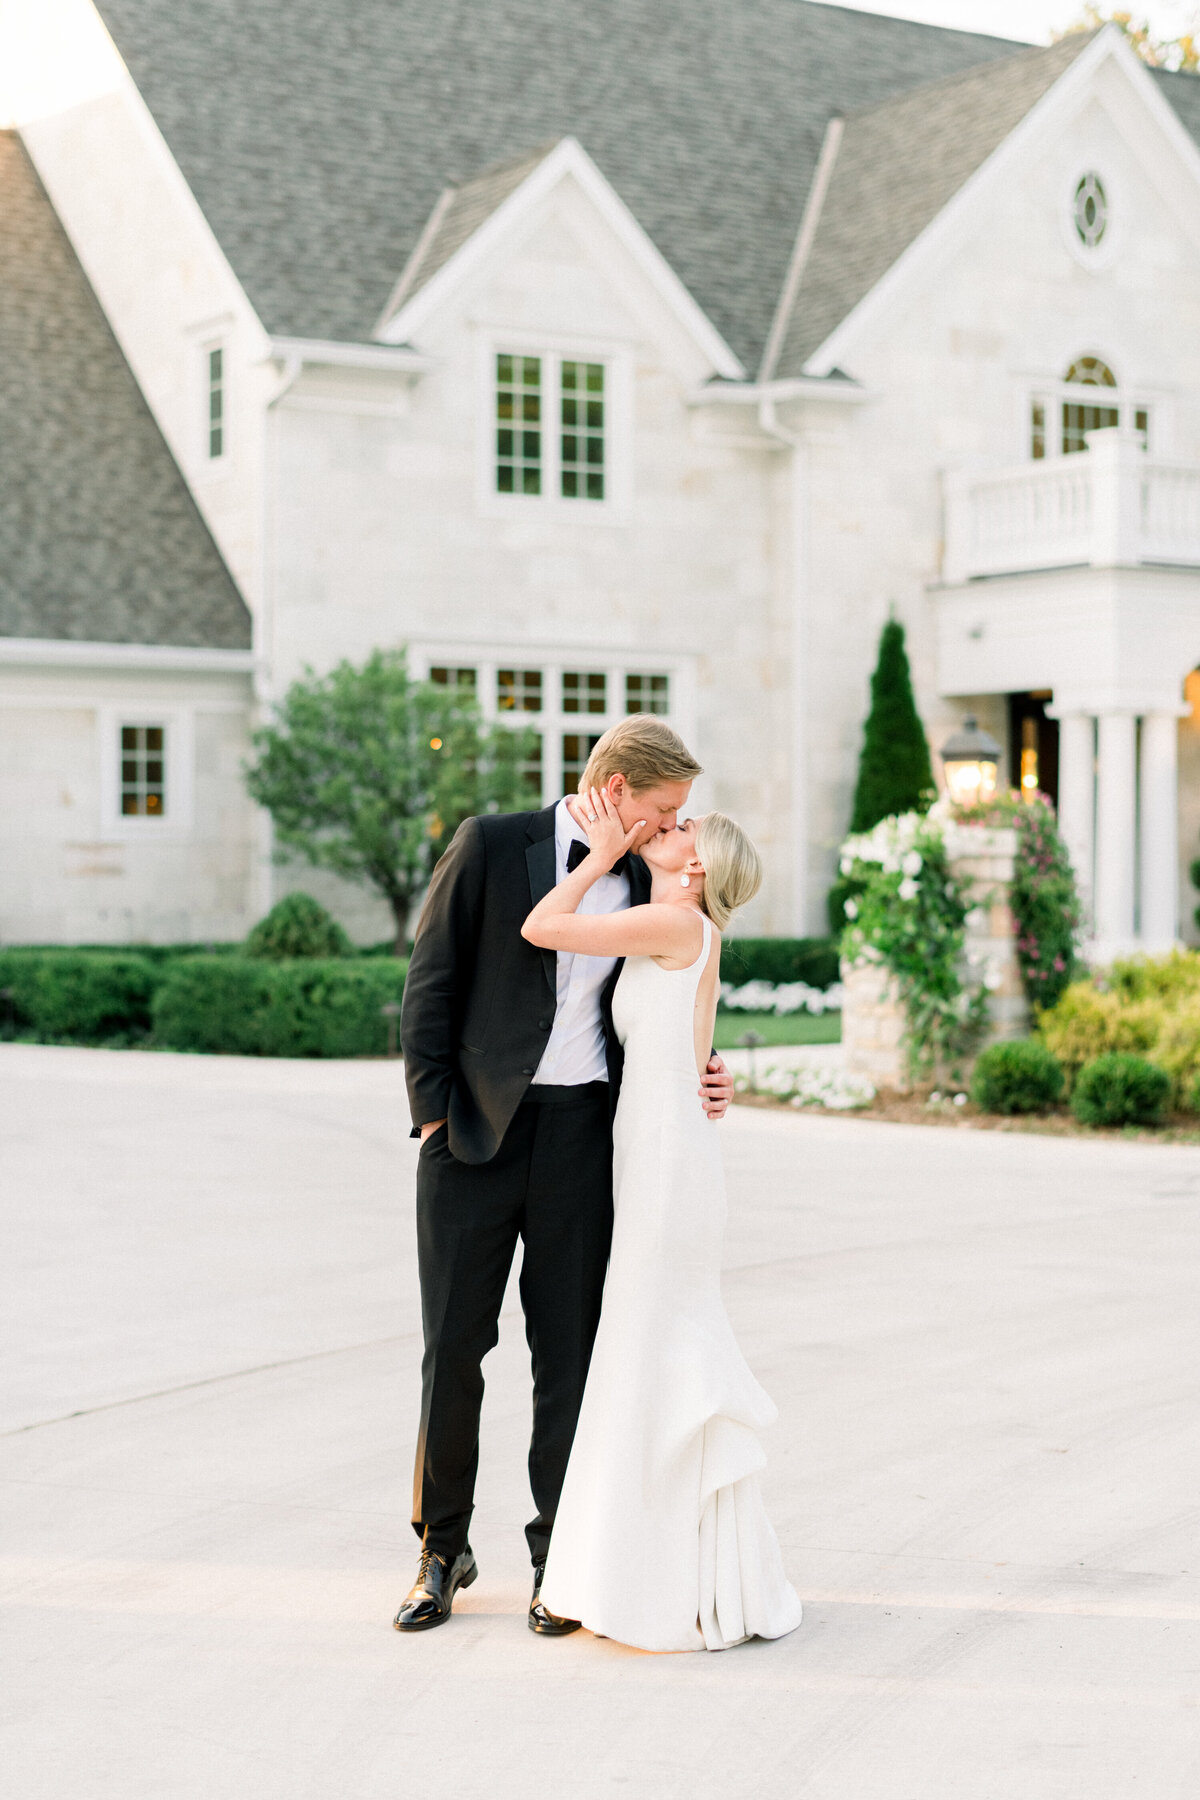 Minneapolis Wedding Photographer, Minneapolis Luxury Photogrpaher, Minnesota wedding photographer, Minneapolis light and airy photographer, luxury wedding photographer, Wisconsin wedding photographer